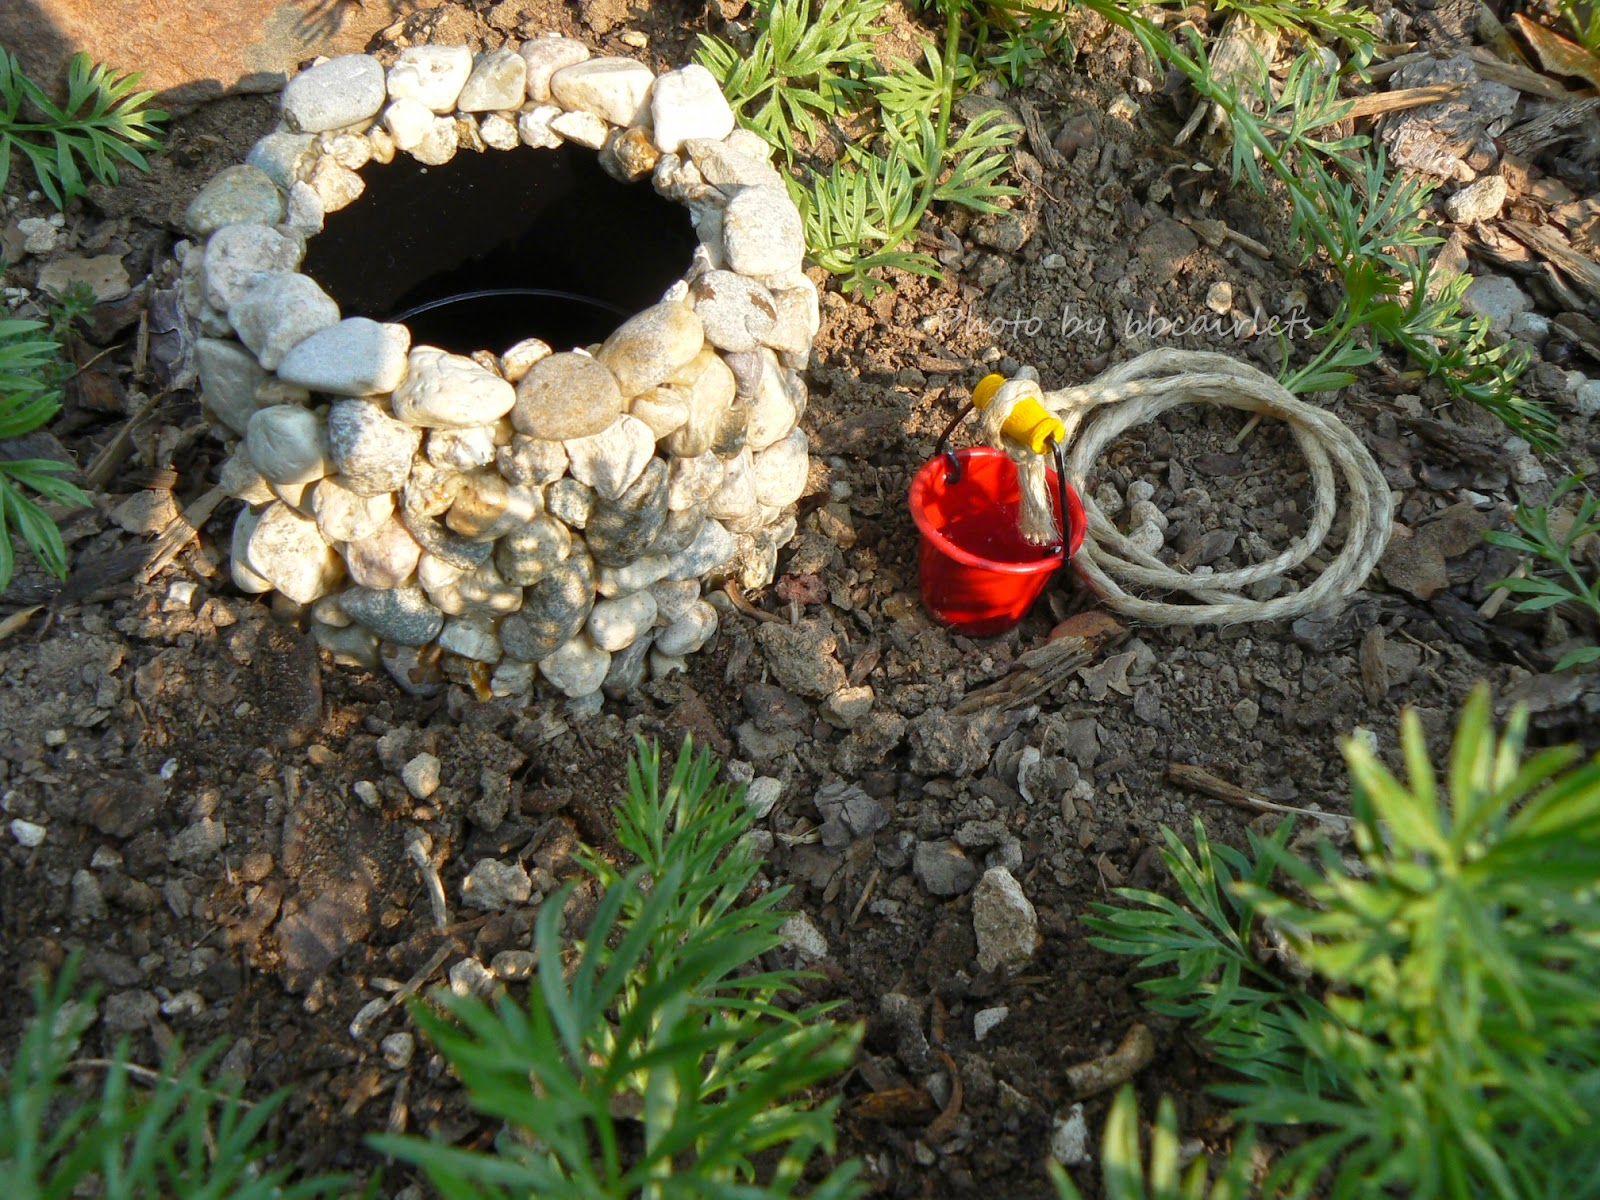 Today S Project Is Something You Can Customize Take It To The Next Level Or Make Out Of Diffe Materials Fit With Your Fairy Garden Theme